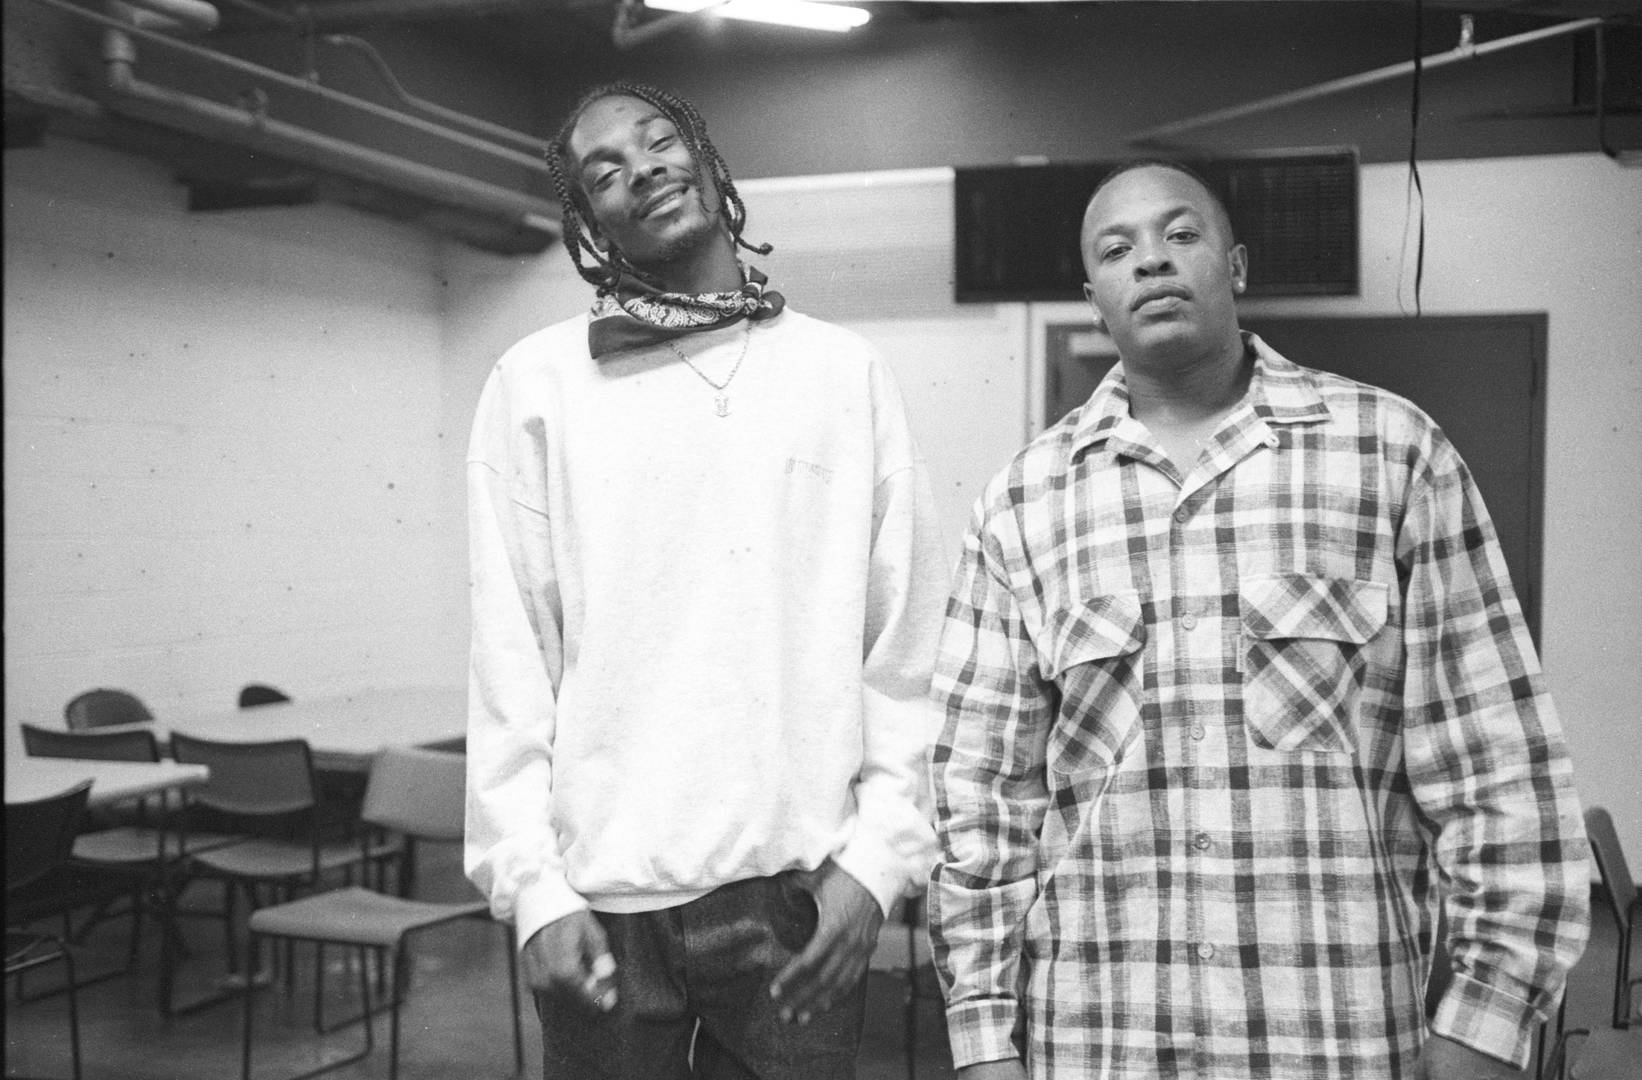 dr. dre snoop dogg vintage photo